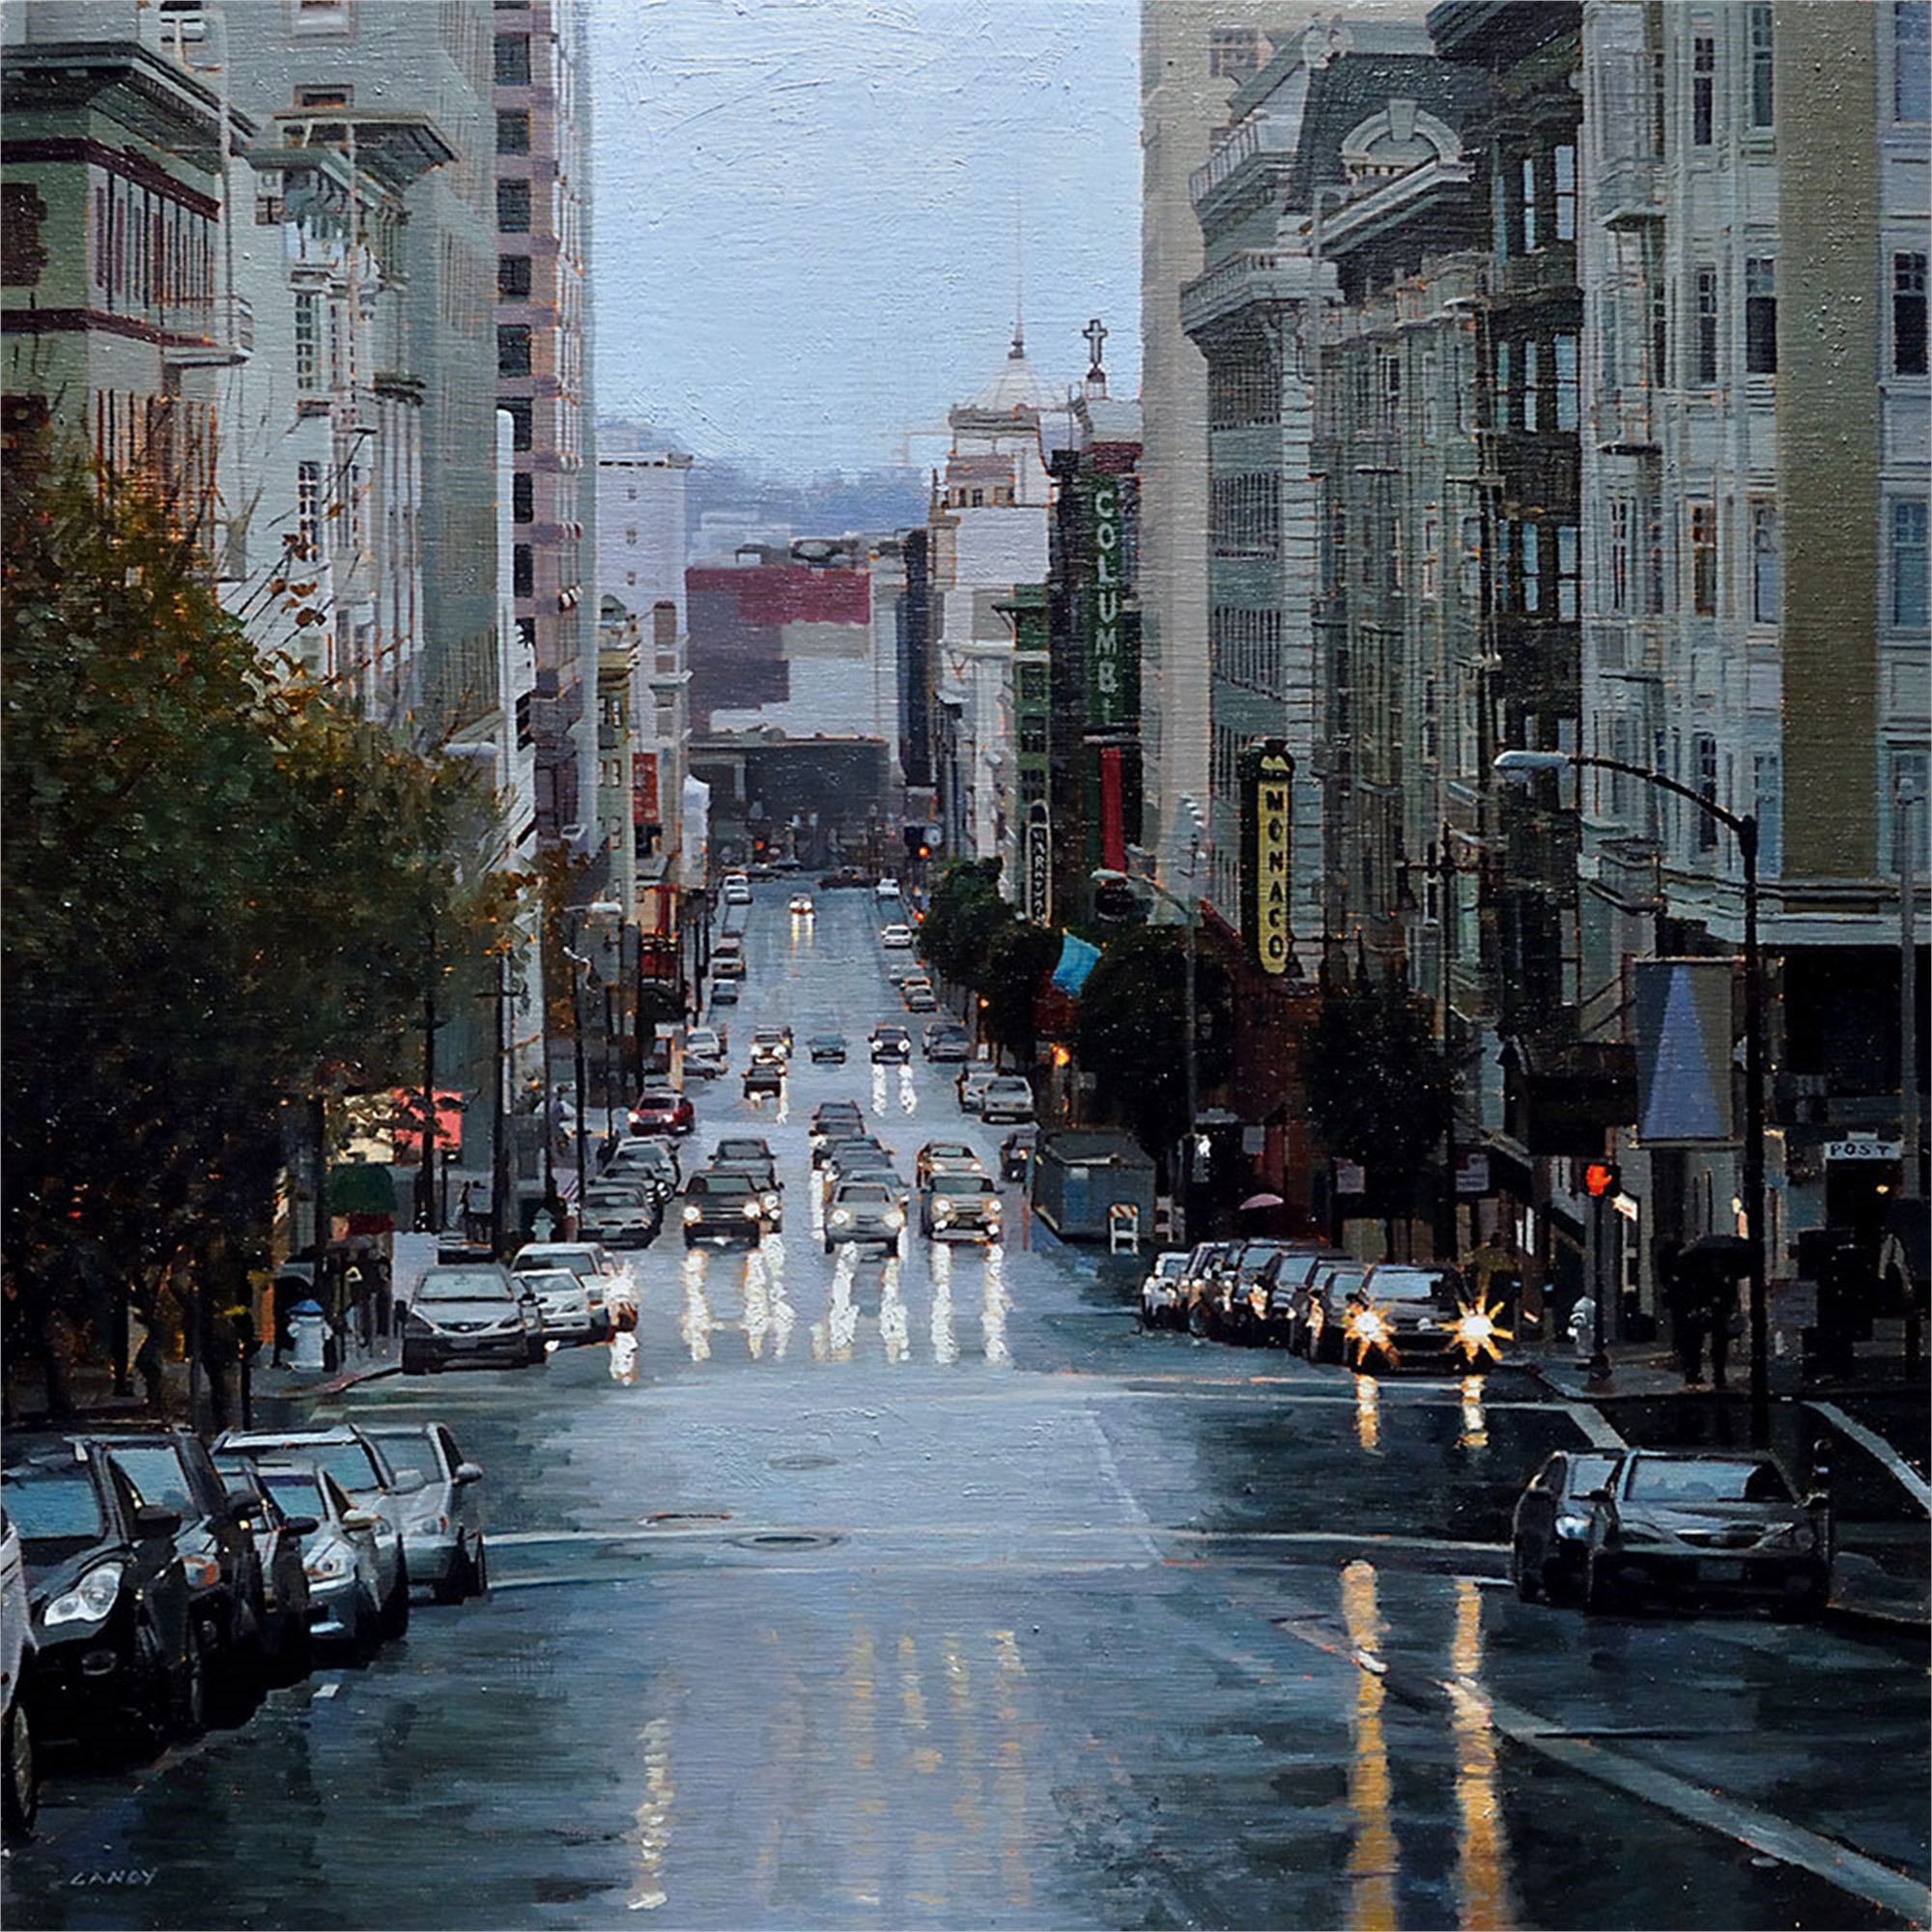 Looking Down Taylor Street by Greg Gandy